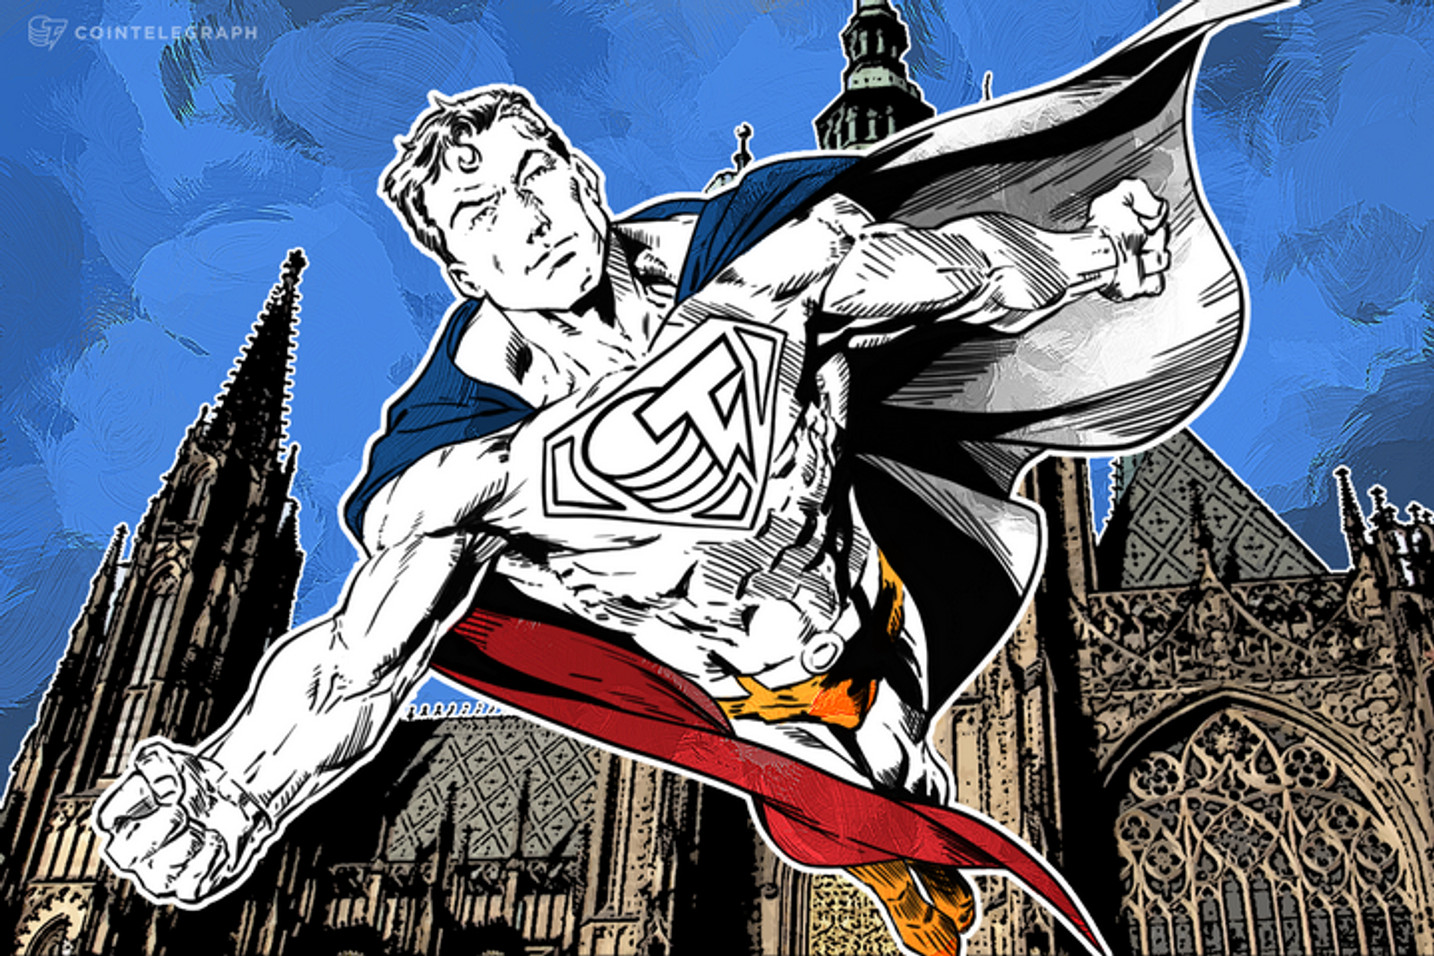 Czech Republic Crypto Community Bolstered by Cointelegraph's Regional Launch